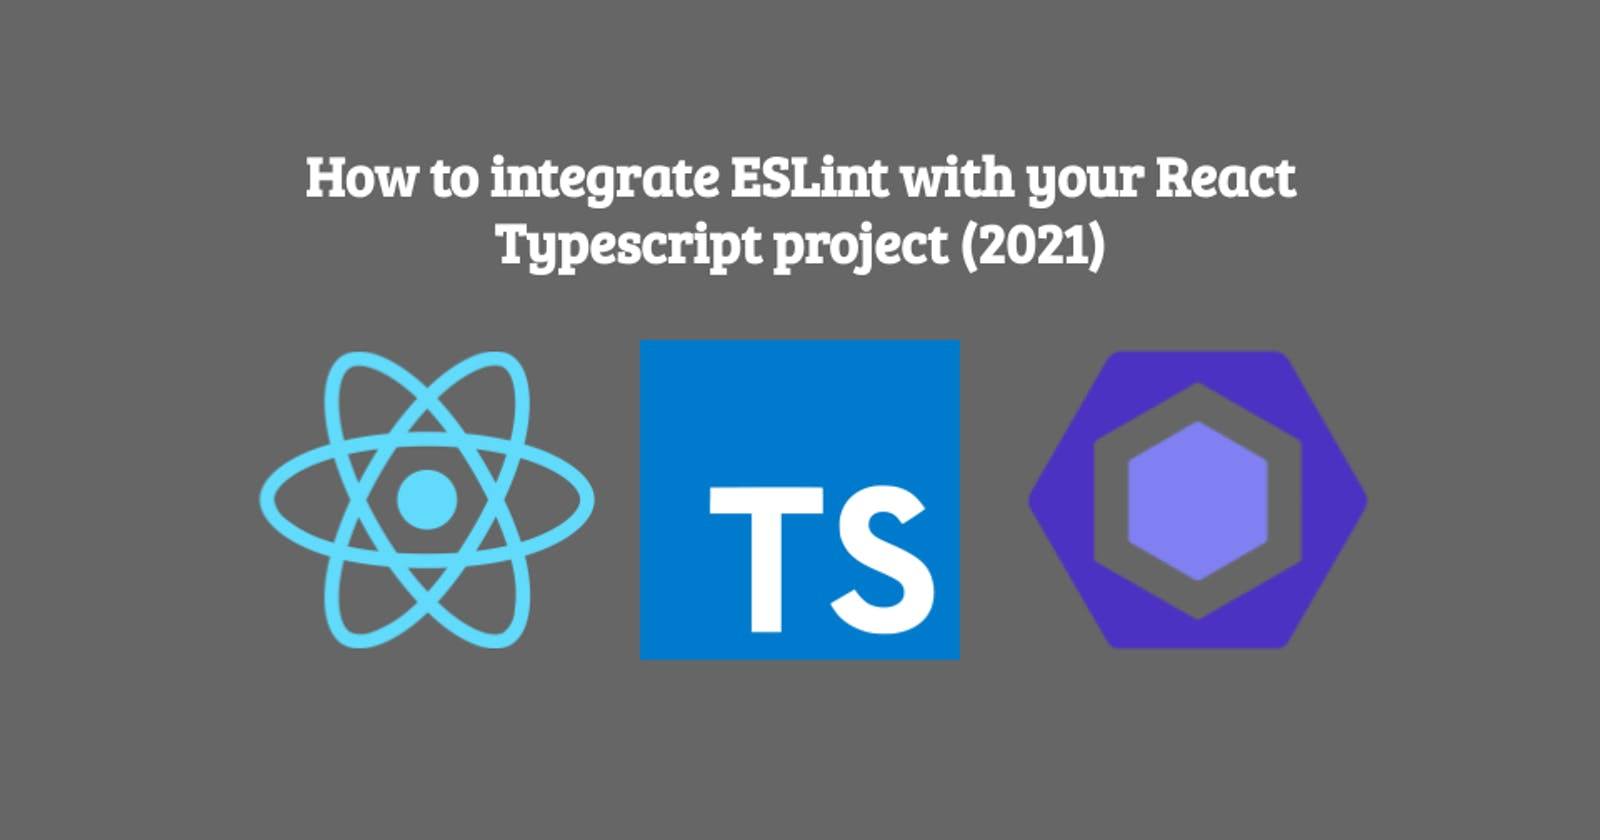 How to integrate ESLint with your React Typescript project (2021)